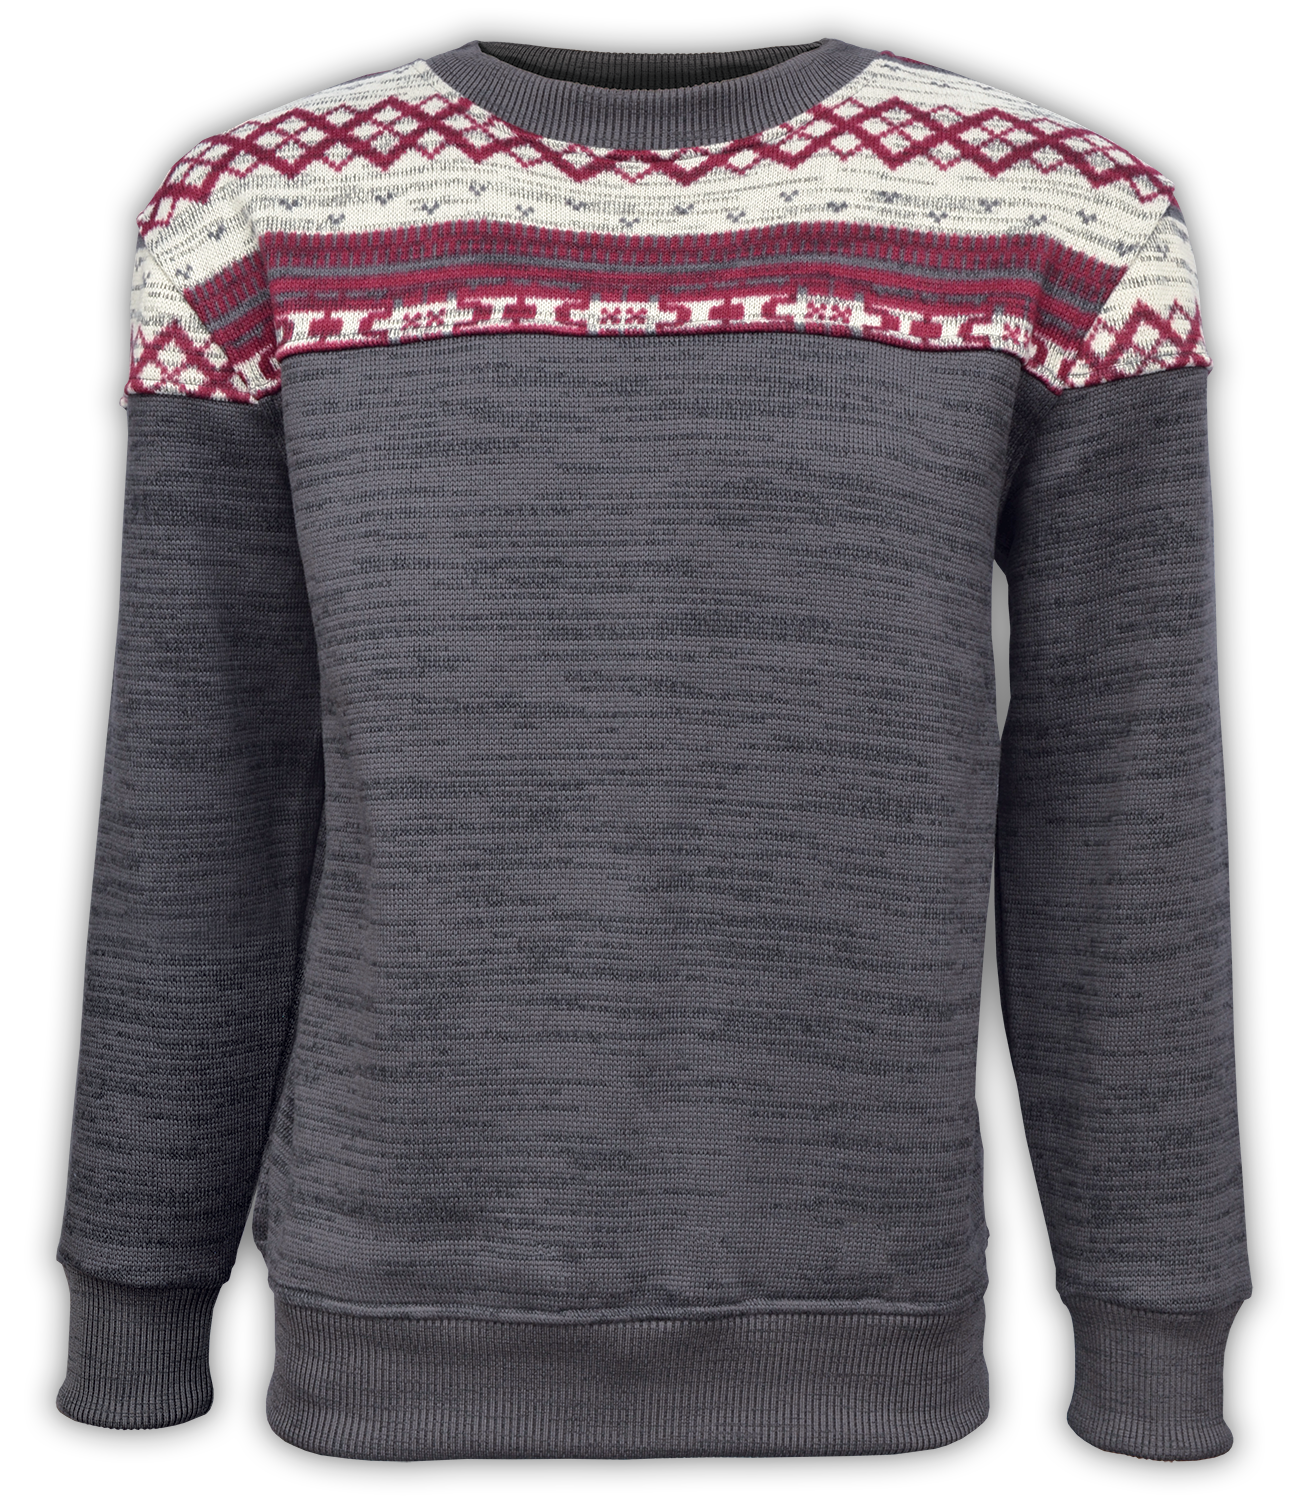 printed sweater fleece pattern crewneck, full chest embroidery wholesale